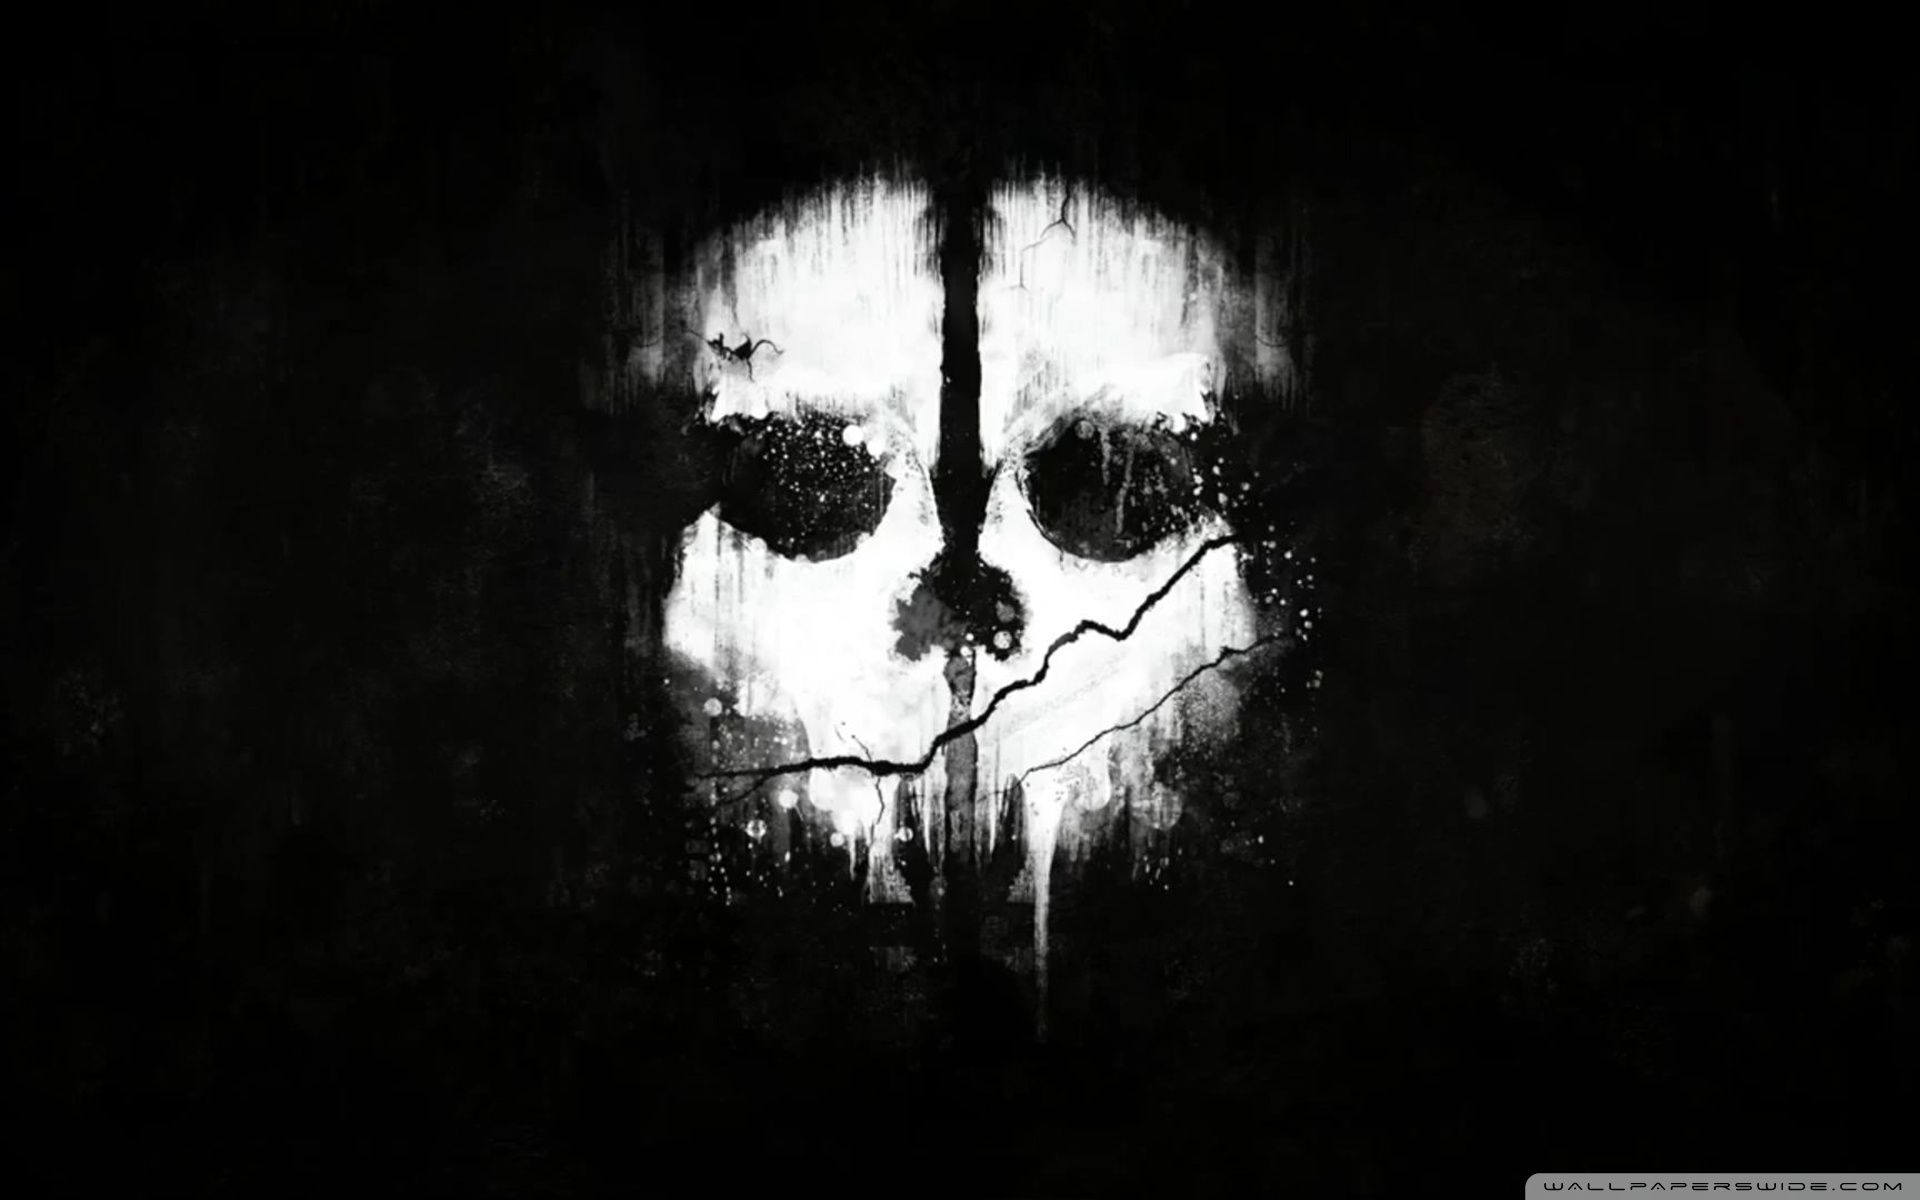 Call Of Duty Wallpaper In 2020 Gaming Wallpapers Call Of Duty Ghosts Gaming Wallpapers Hd